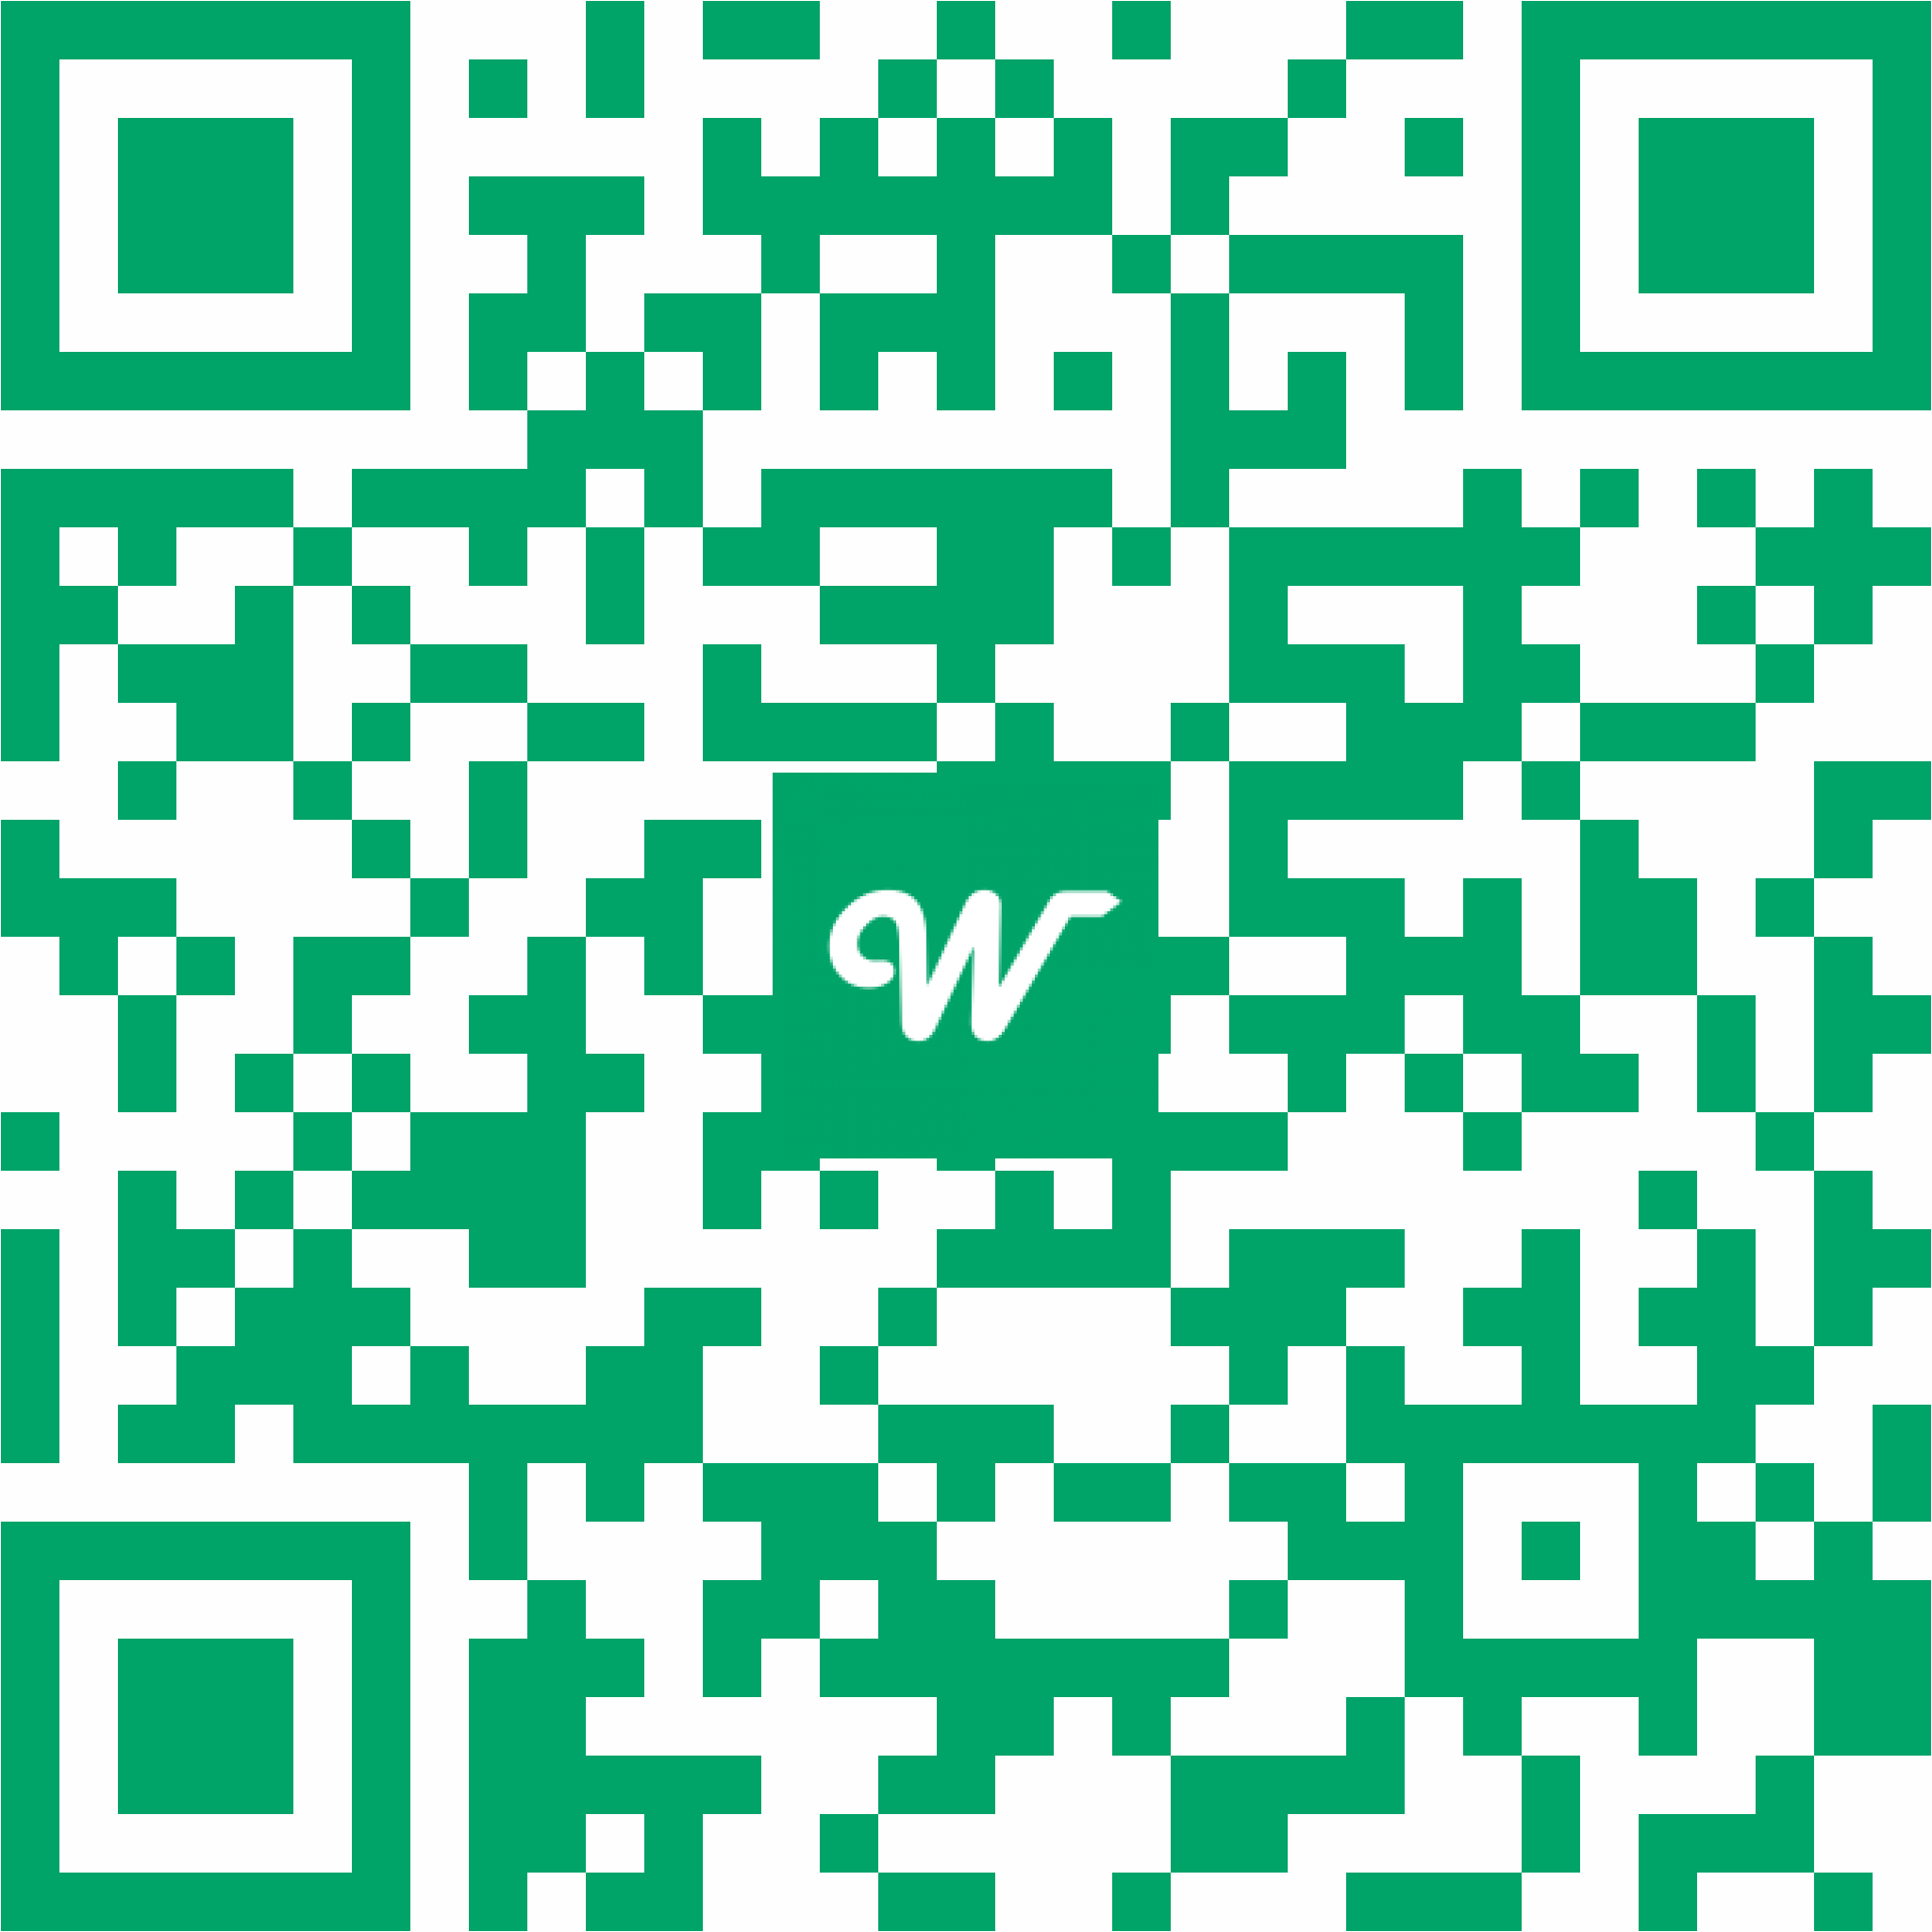 Printable QR code for Strongsville